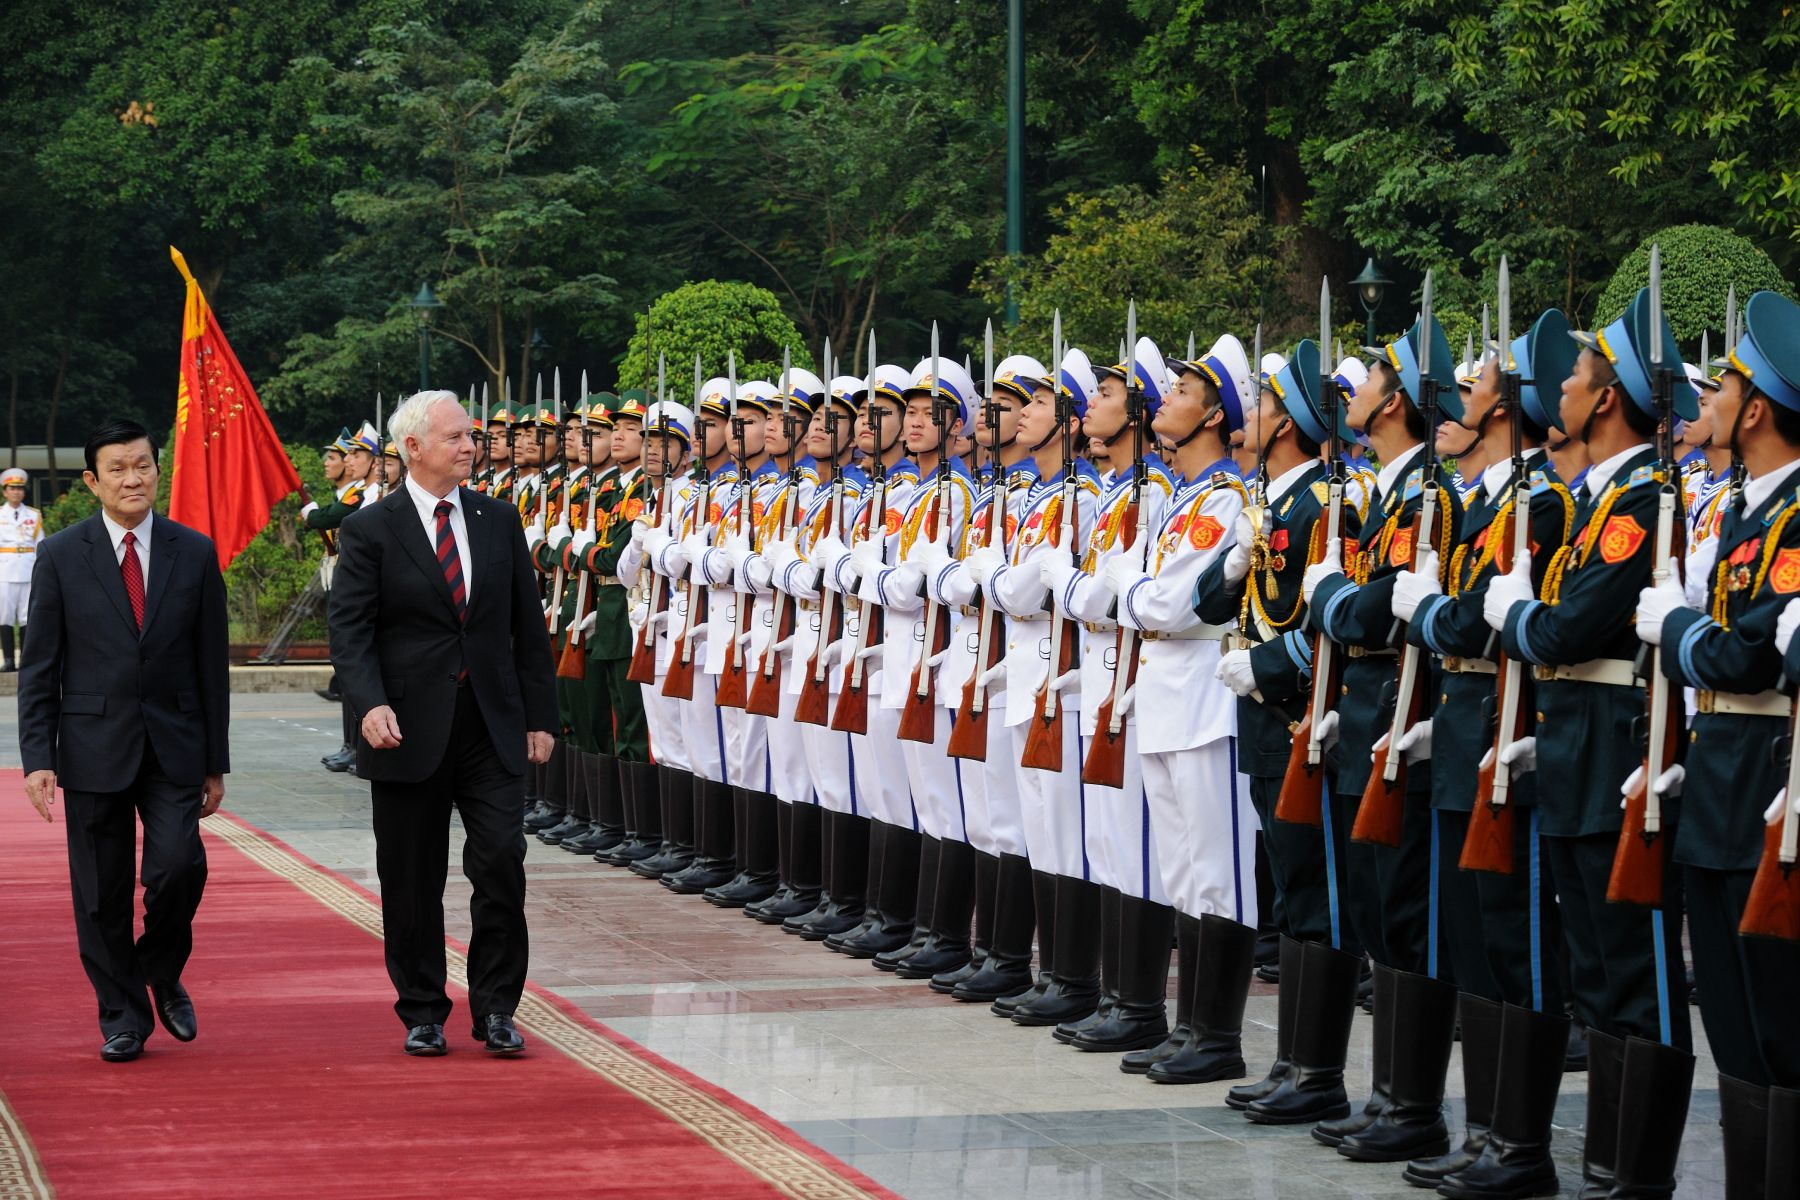 During the official welcoming ceremony, the Governor General, accompanied by His Excellency Truong Tan Sang, President of the Socialist Republic of Vietnam, conducted an inspection of the guard of honour.